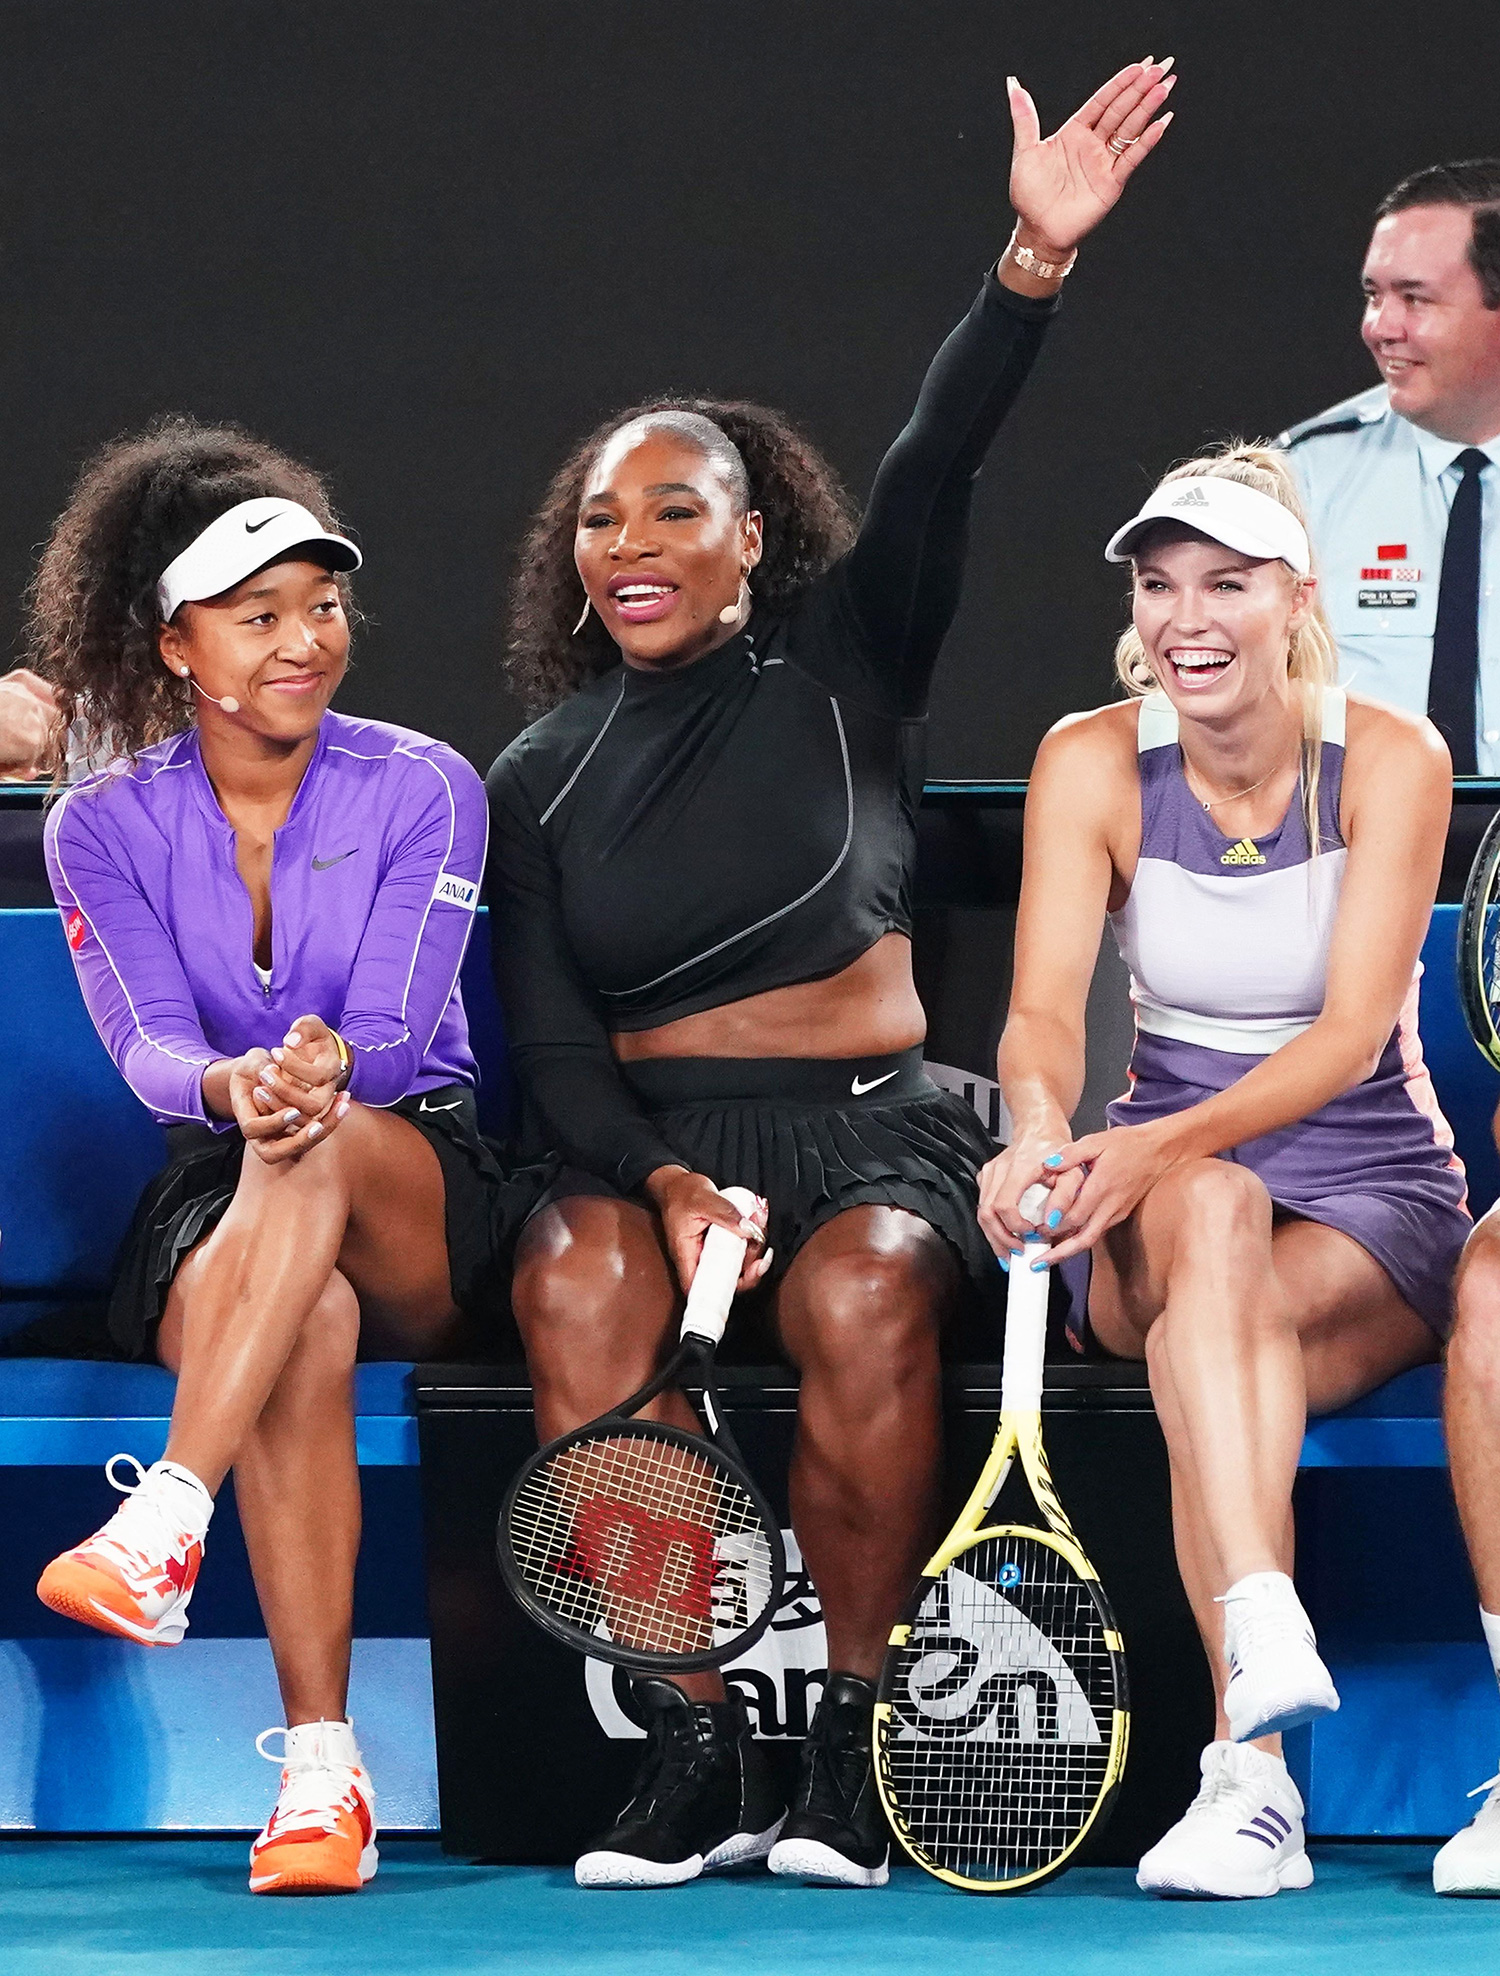 Naomi Osaka of Japan, Serena Williams of the USA, and Caroline Wozniacki of Denmark attend the Rally For Relief at Rod Laver Arena in Melbourne, Australia, 15 January 2020. Sports people and entertainers have come together for the Rally for Relief at Rod Laver Arena in Melbourne to raise money for bushfire relief efforts across Australia. Rally for Relief in Melbourne, Australia - 15 Jan 2020